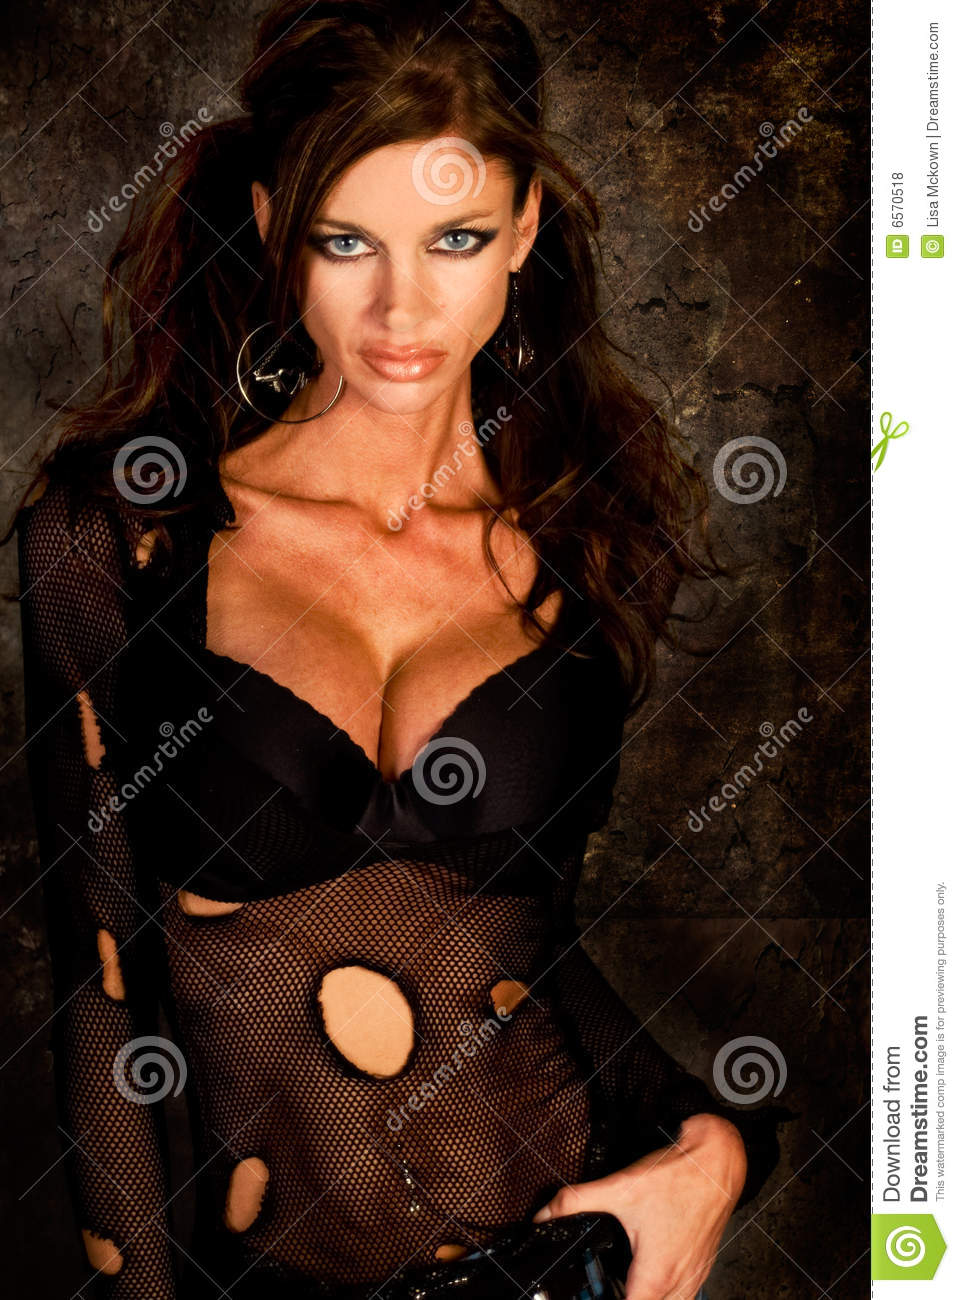 Dark Haired Goth Model Royalty Free Stock Photos Image